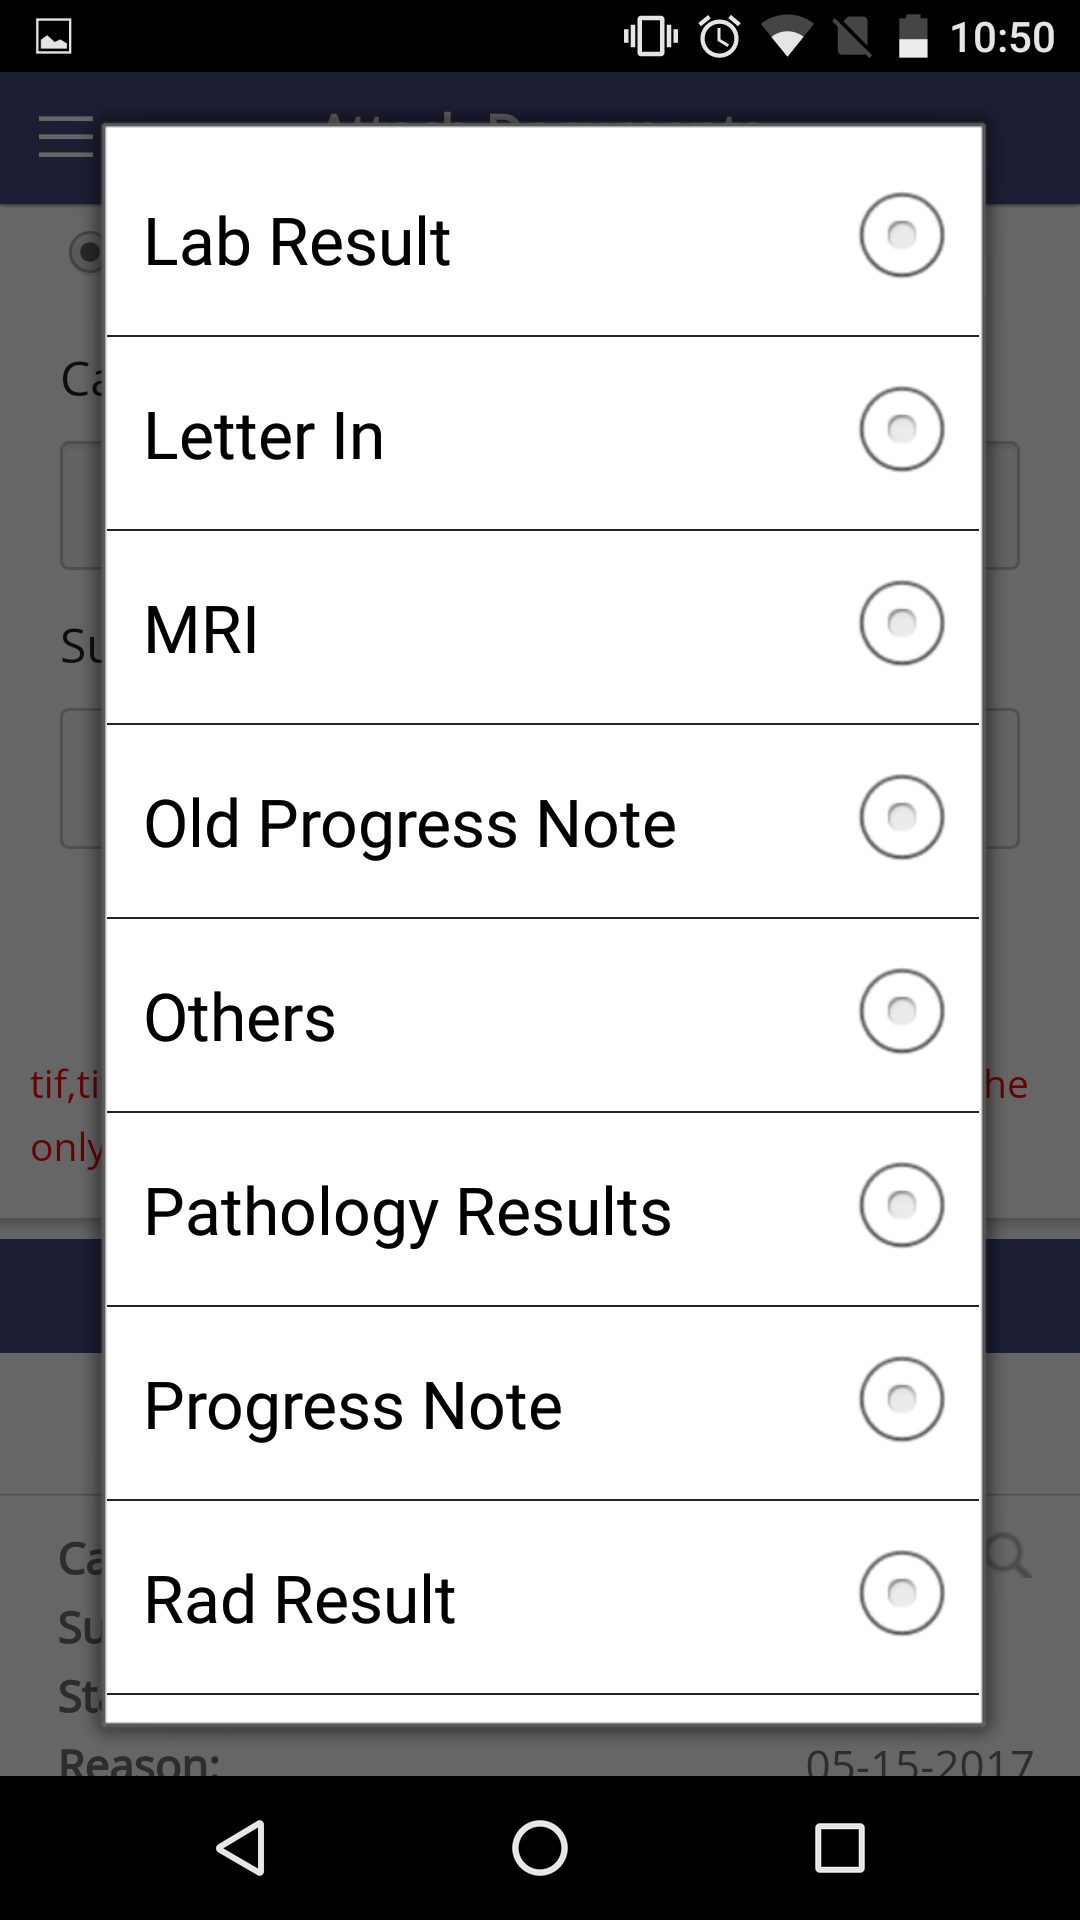 Provision to attach documents on My Health Records App